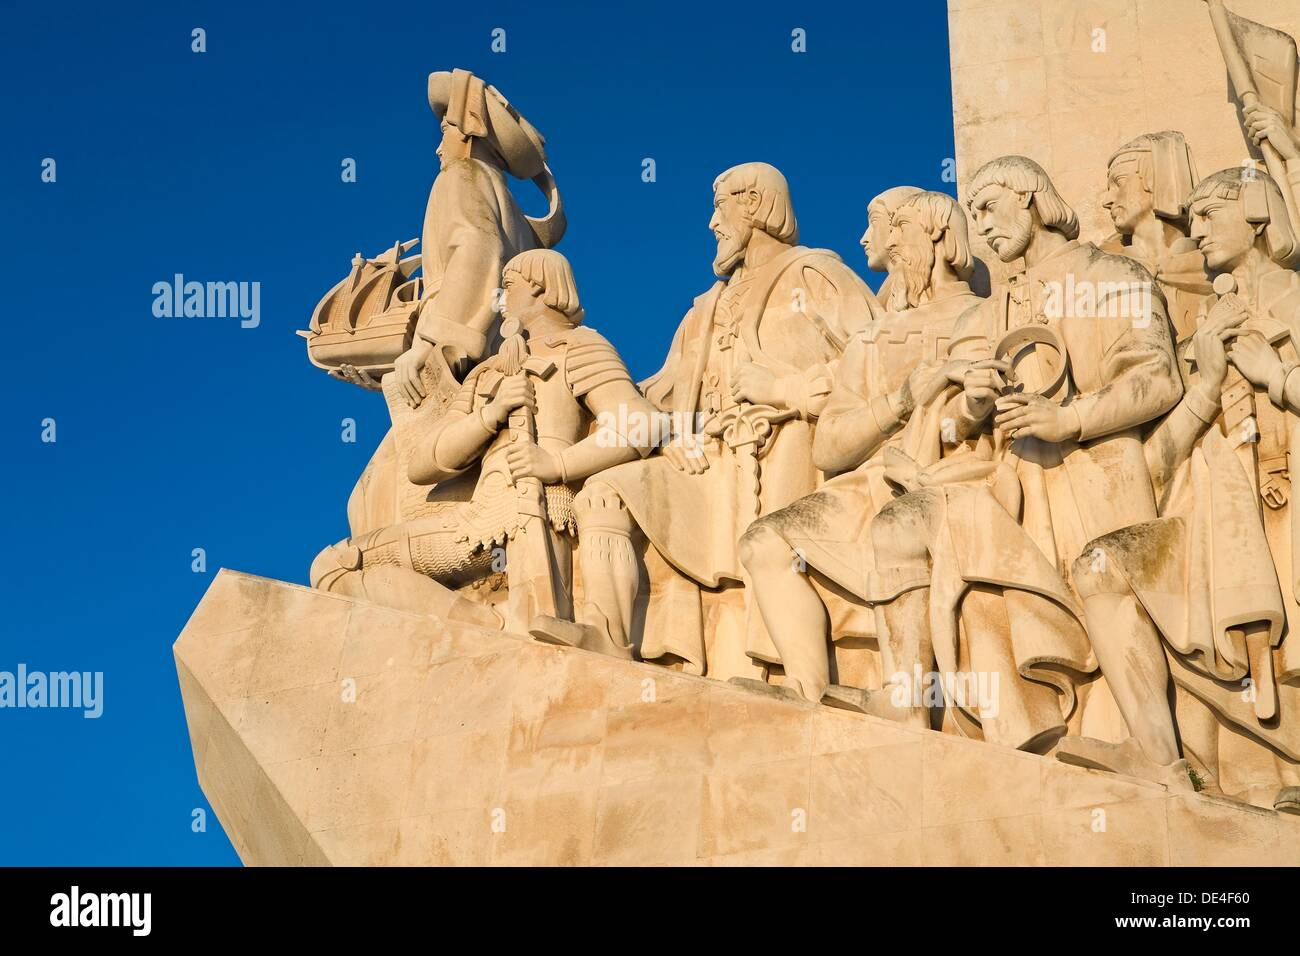 Monument to the Discoverers at dawn, in Belem, Lisbon city, next to the mounth of Tagus river in Atlantic Ocean  Portugal - Stock Image